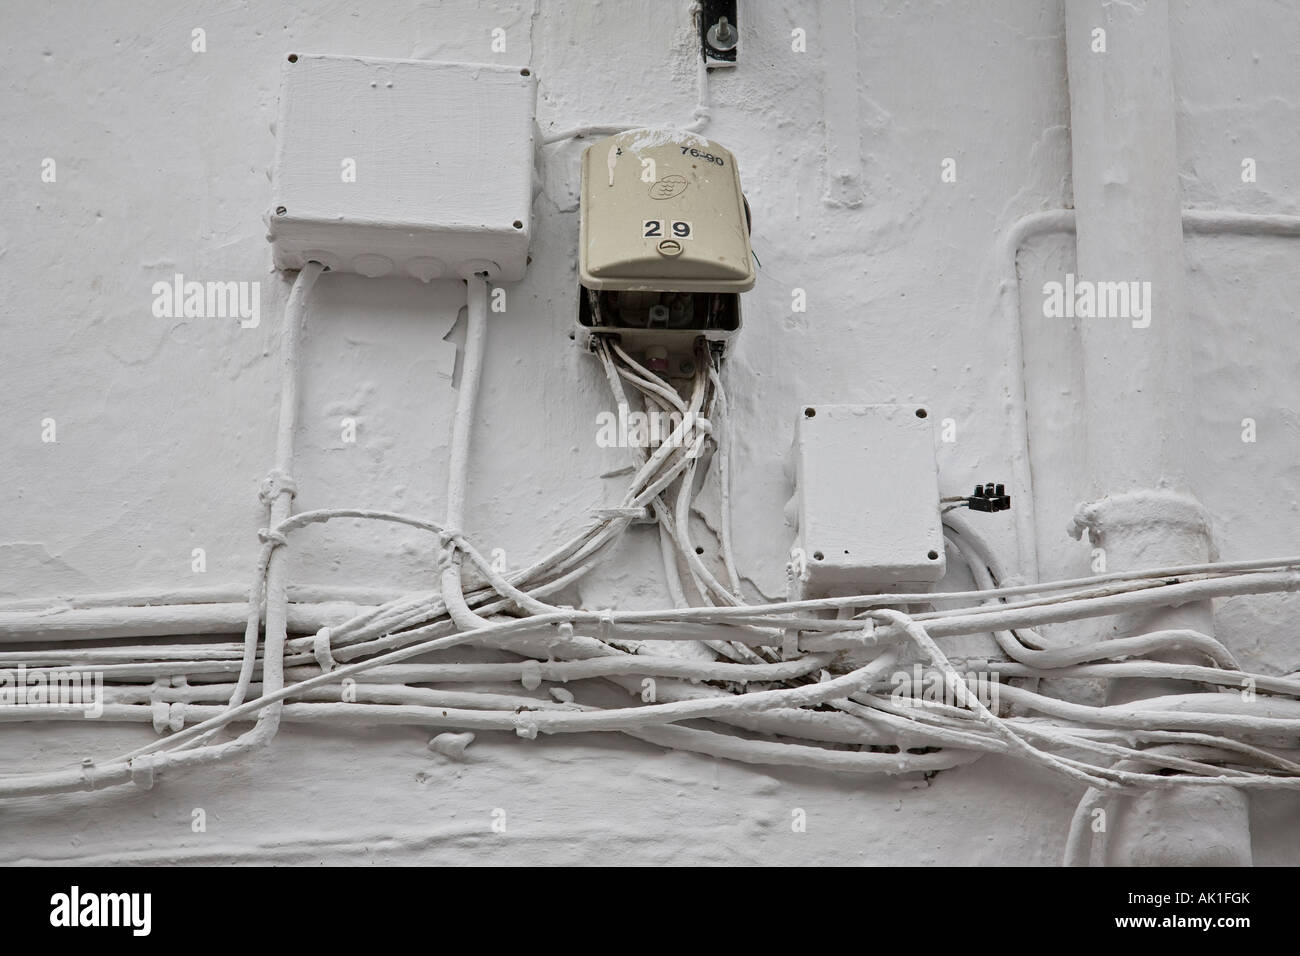 tangled electrical wiring on the outside of a building el gastor rh alamy com outside electrical wiring code electrical code outdoor wiring